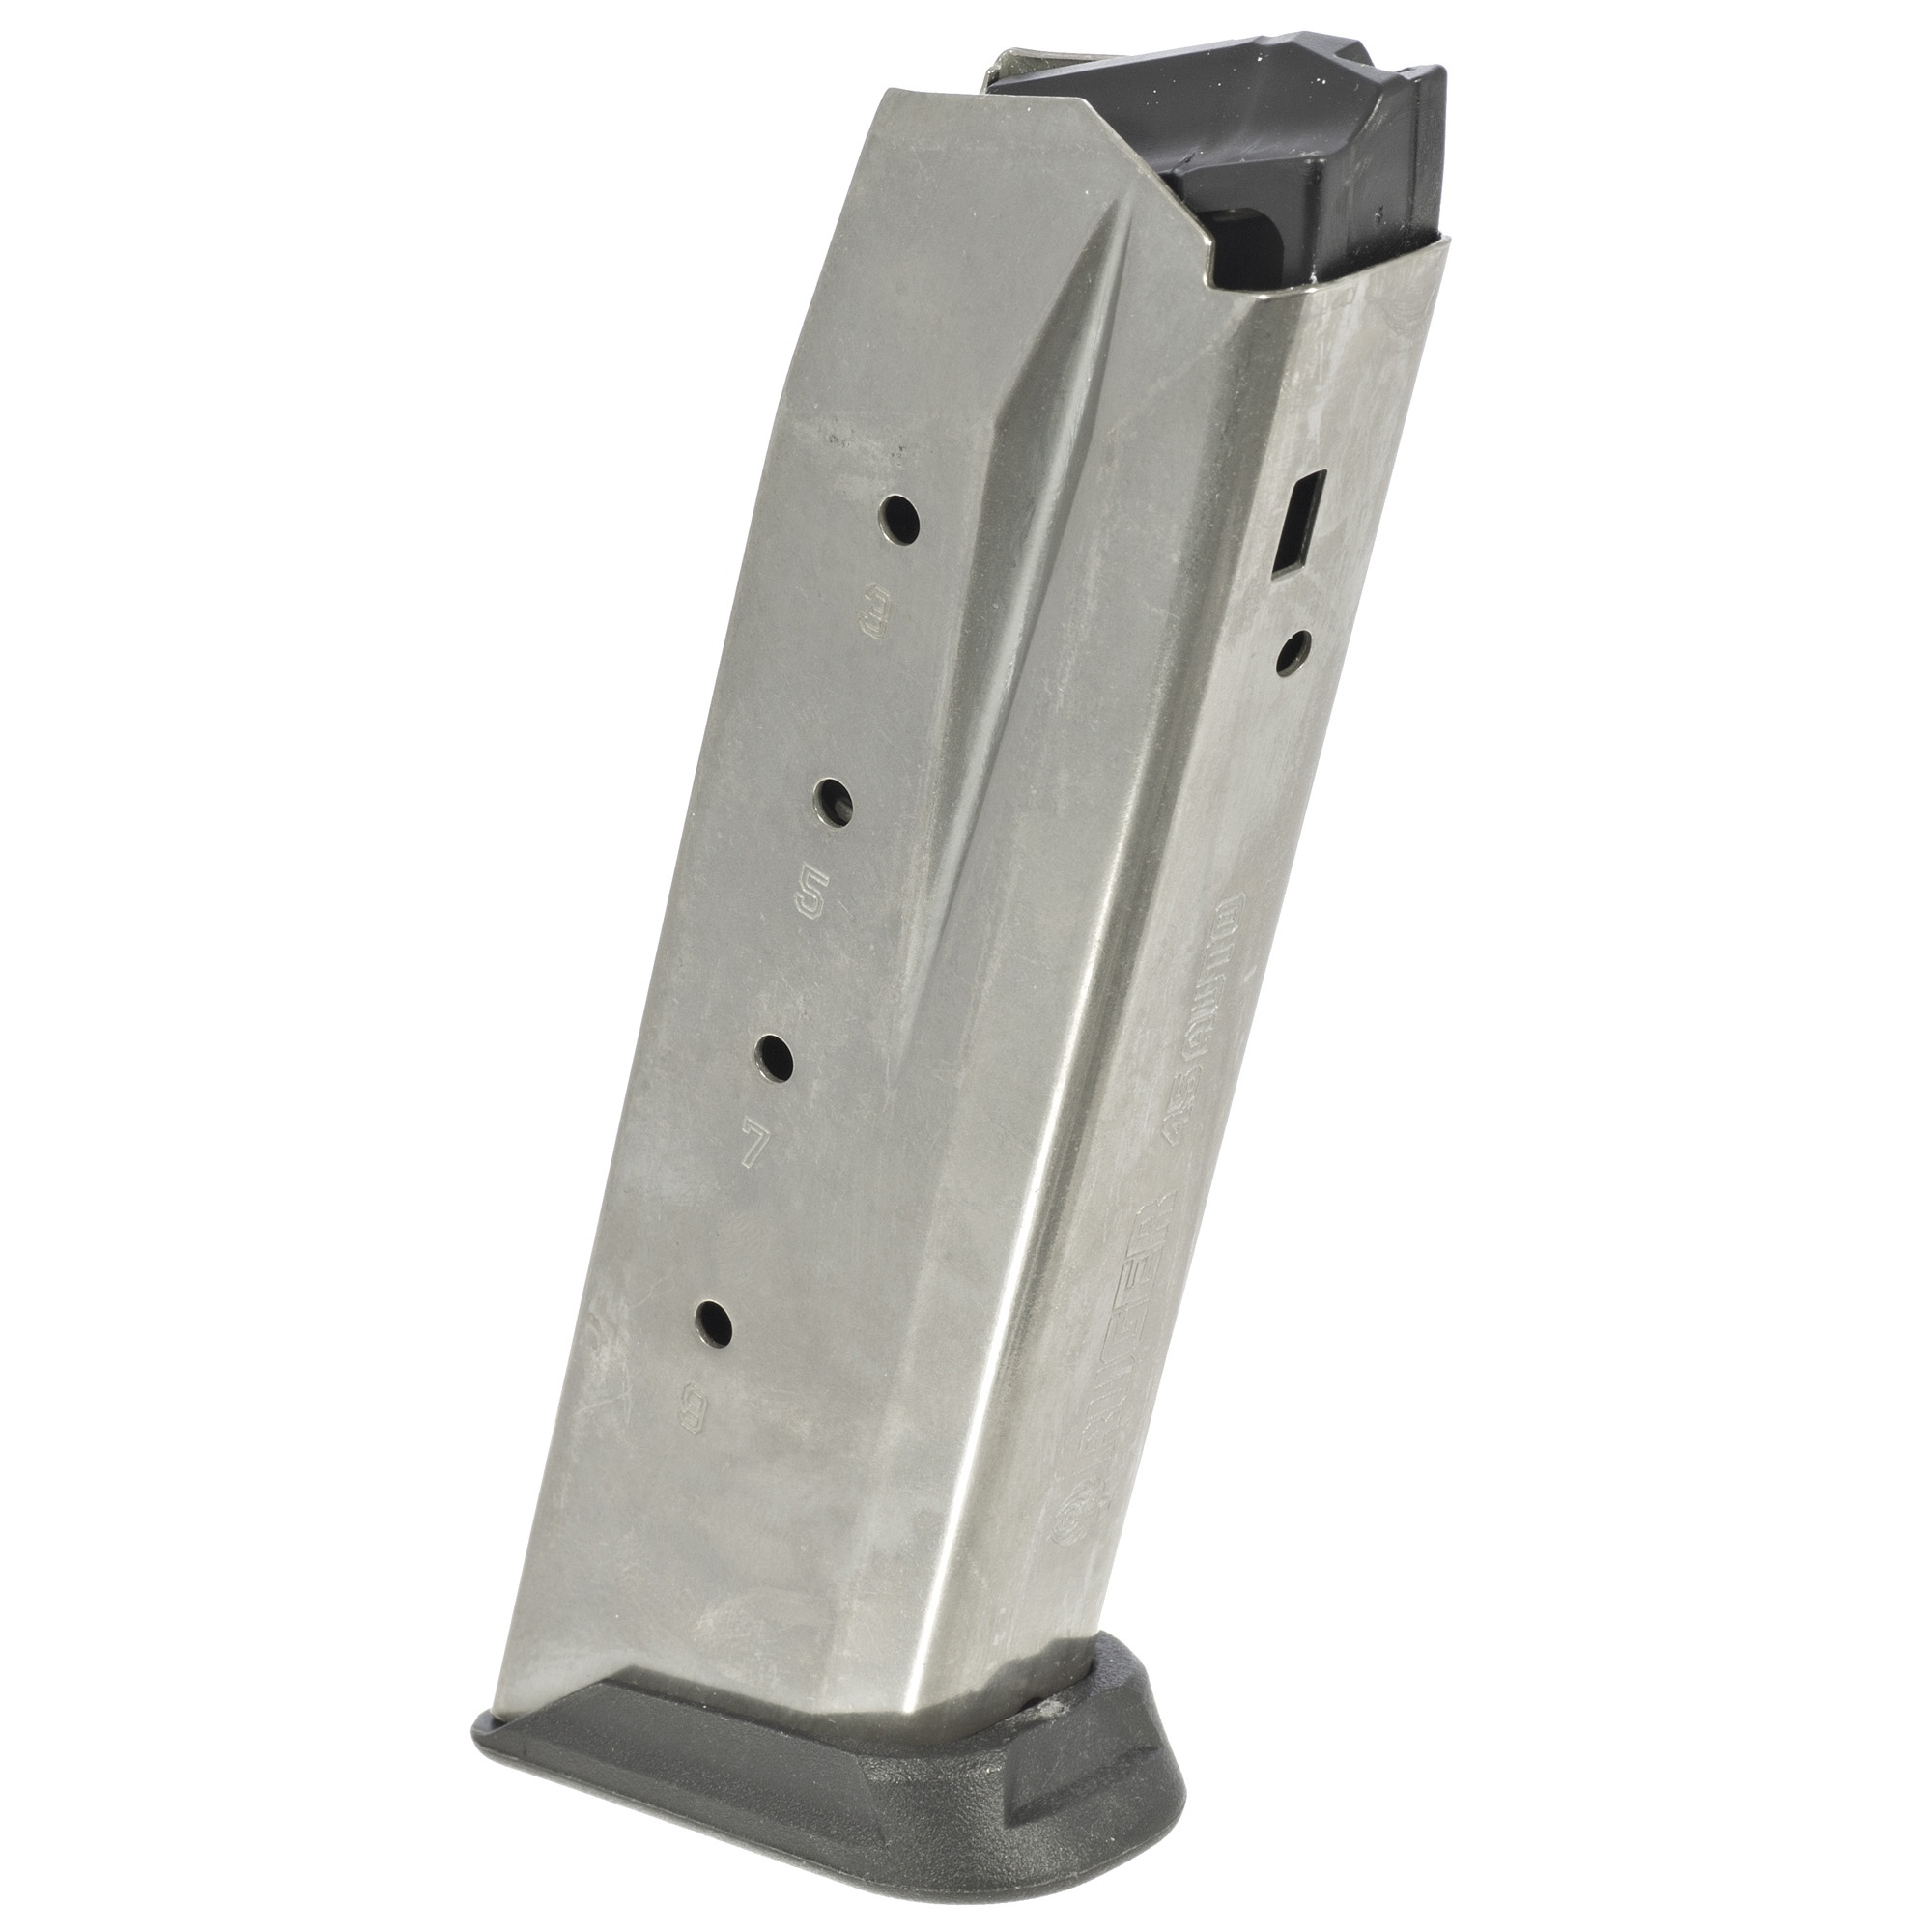 Ruger American Pistol 45acp 10 round Magazine · DK Firearms